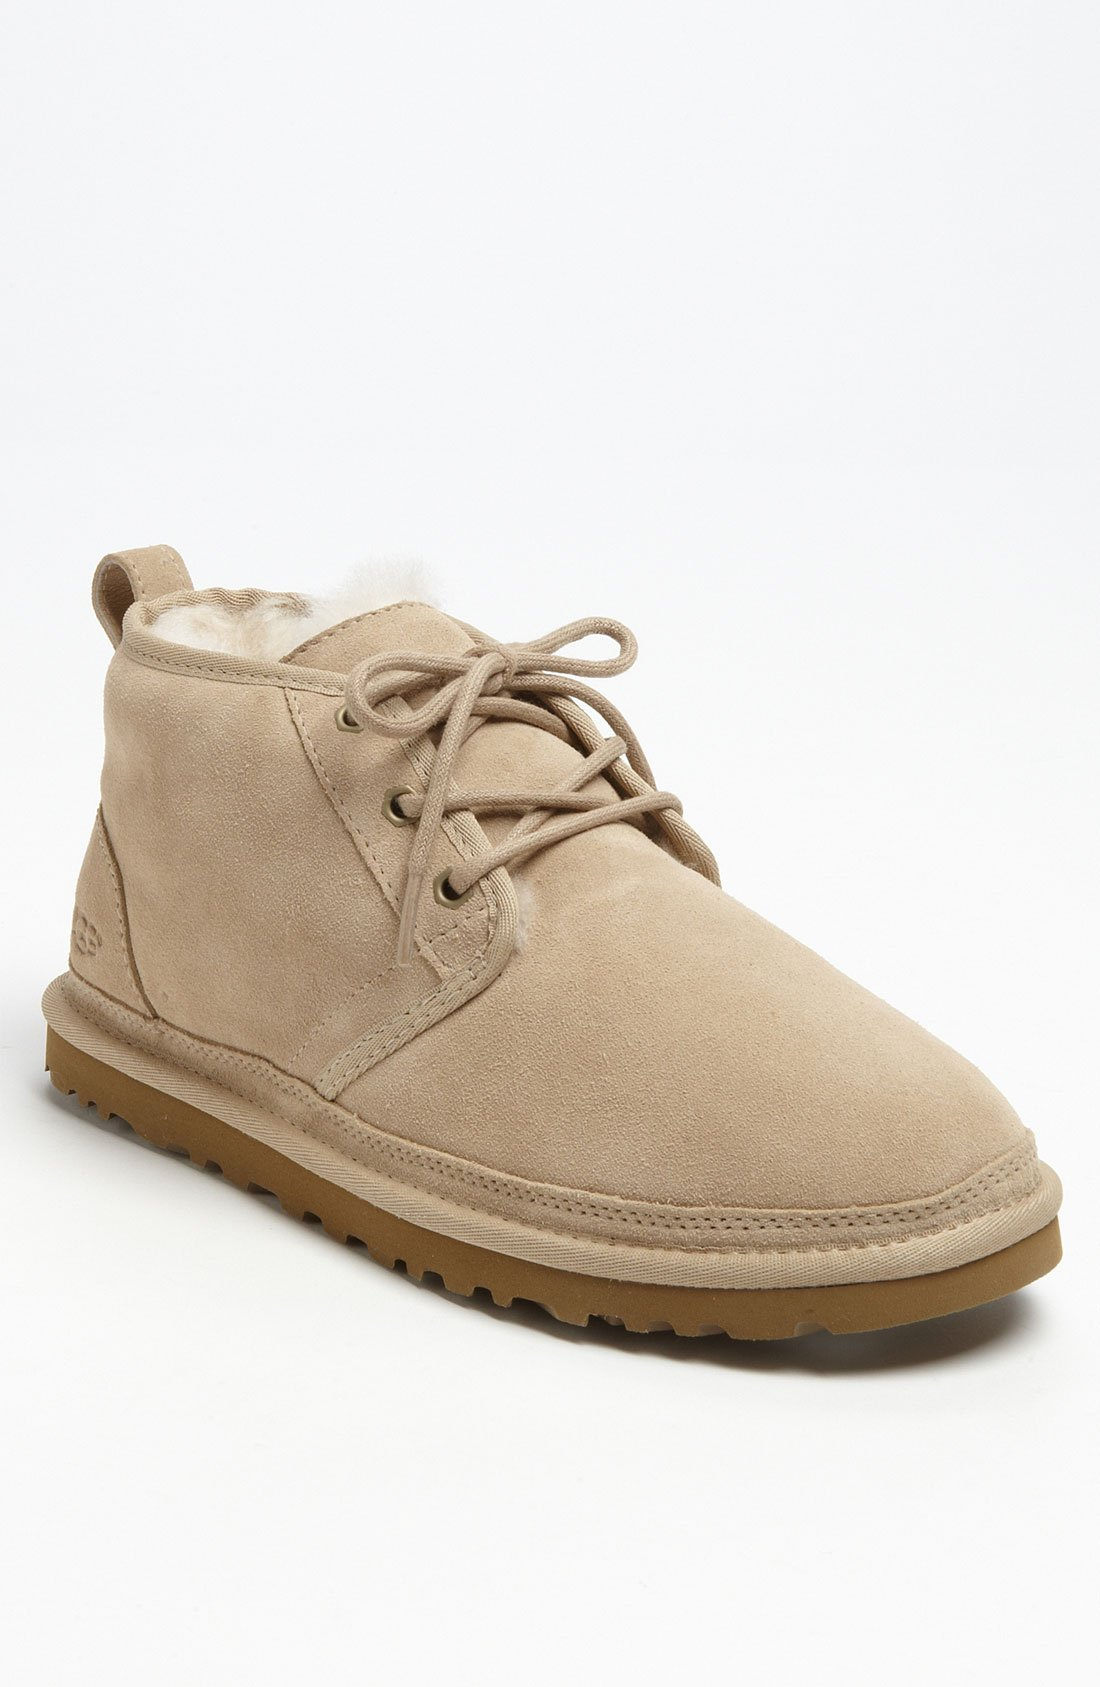 495c682018a Ugg Boots For Men - cheap watches mgc-gas.com